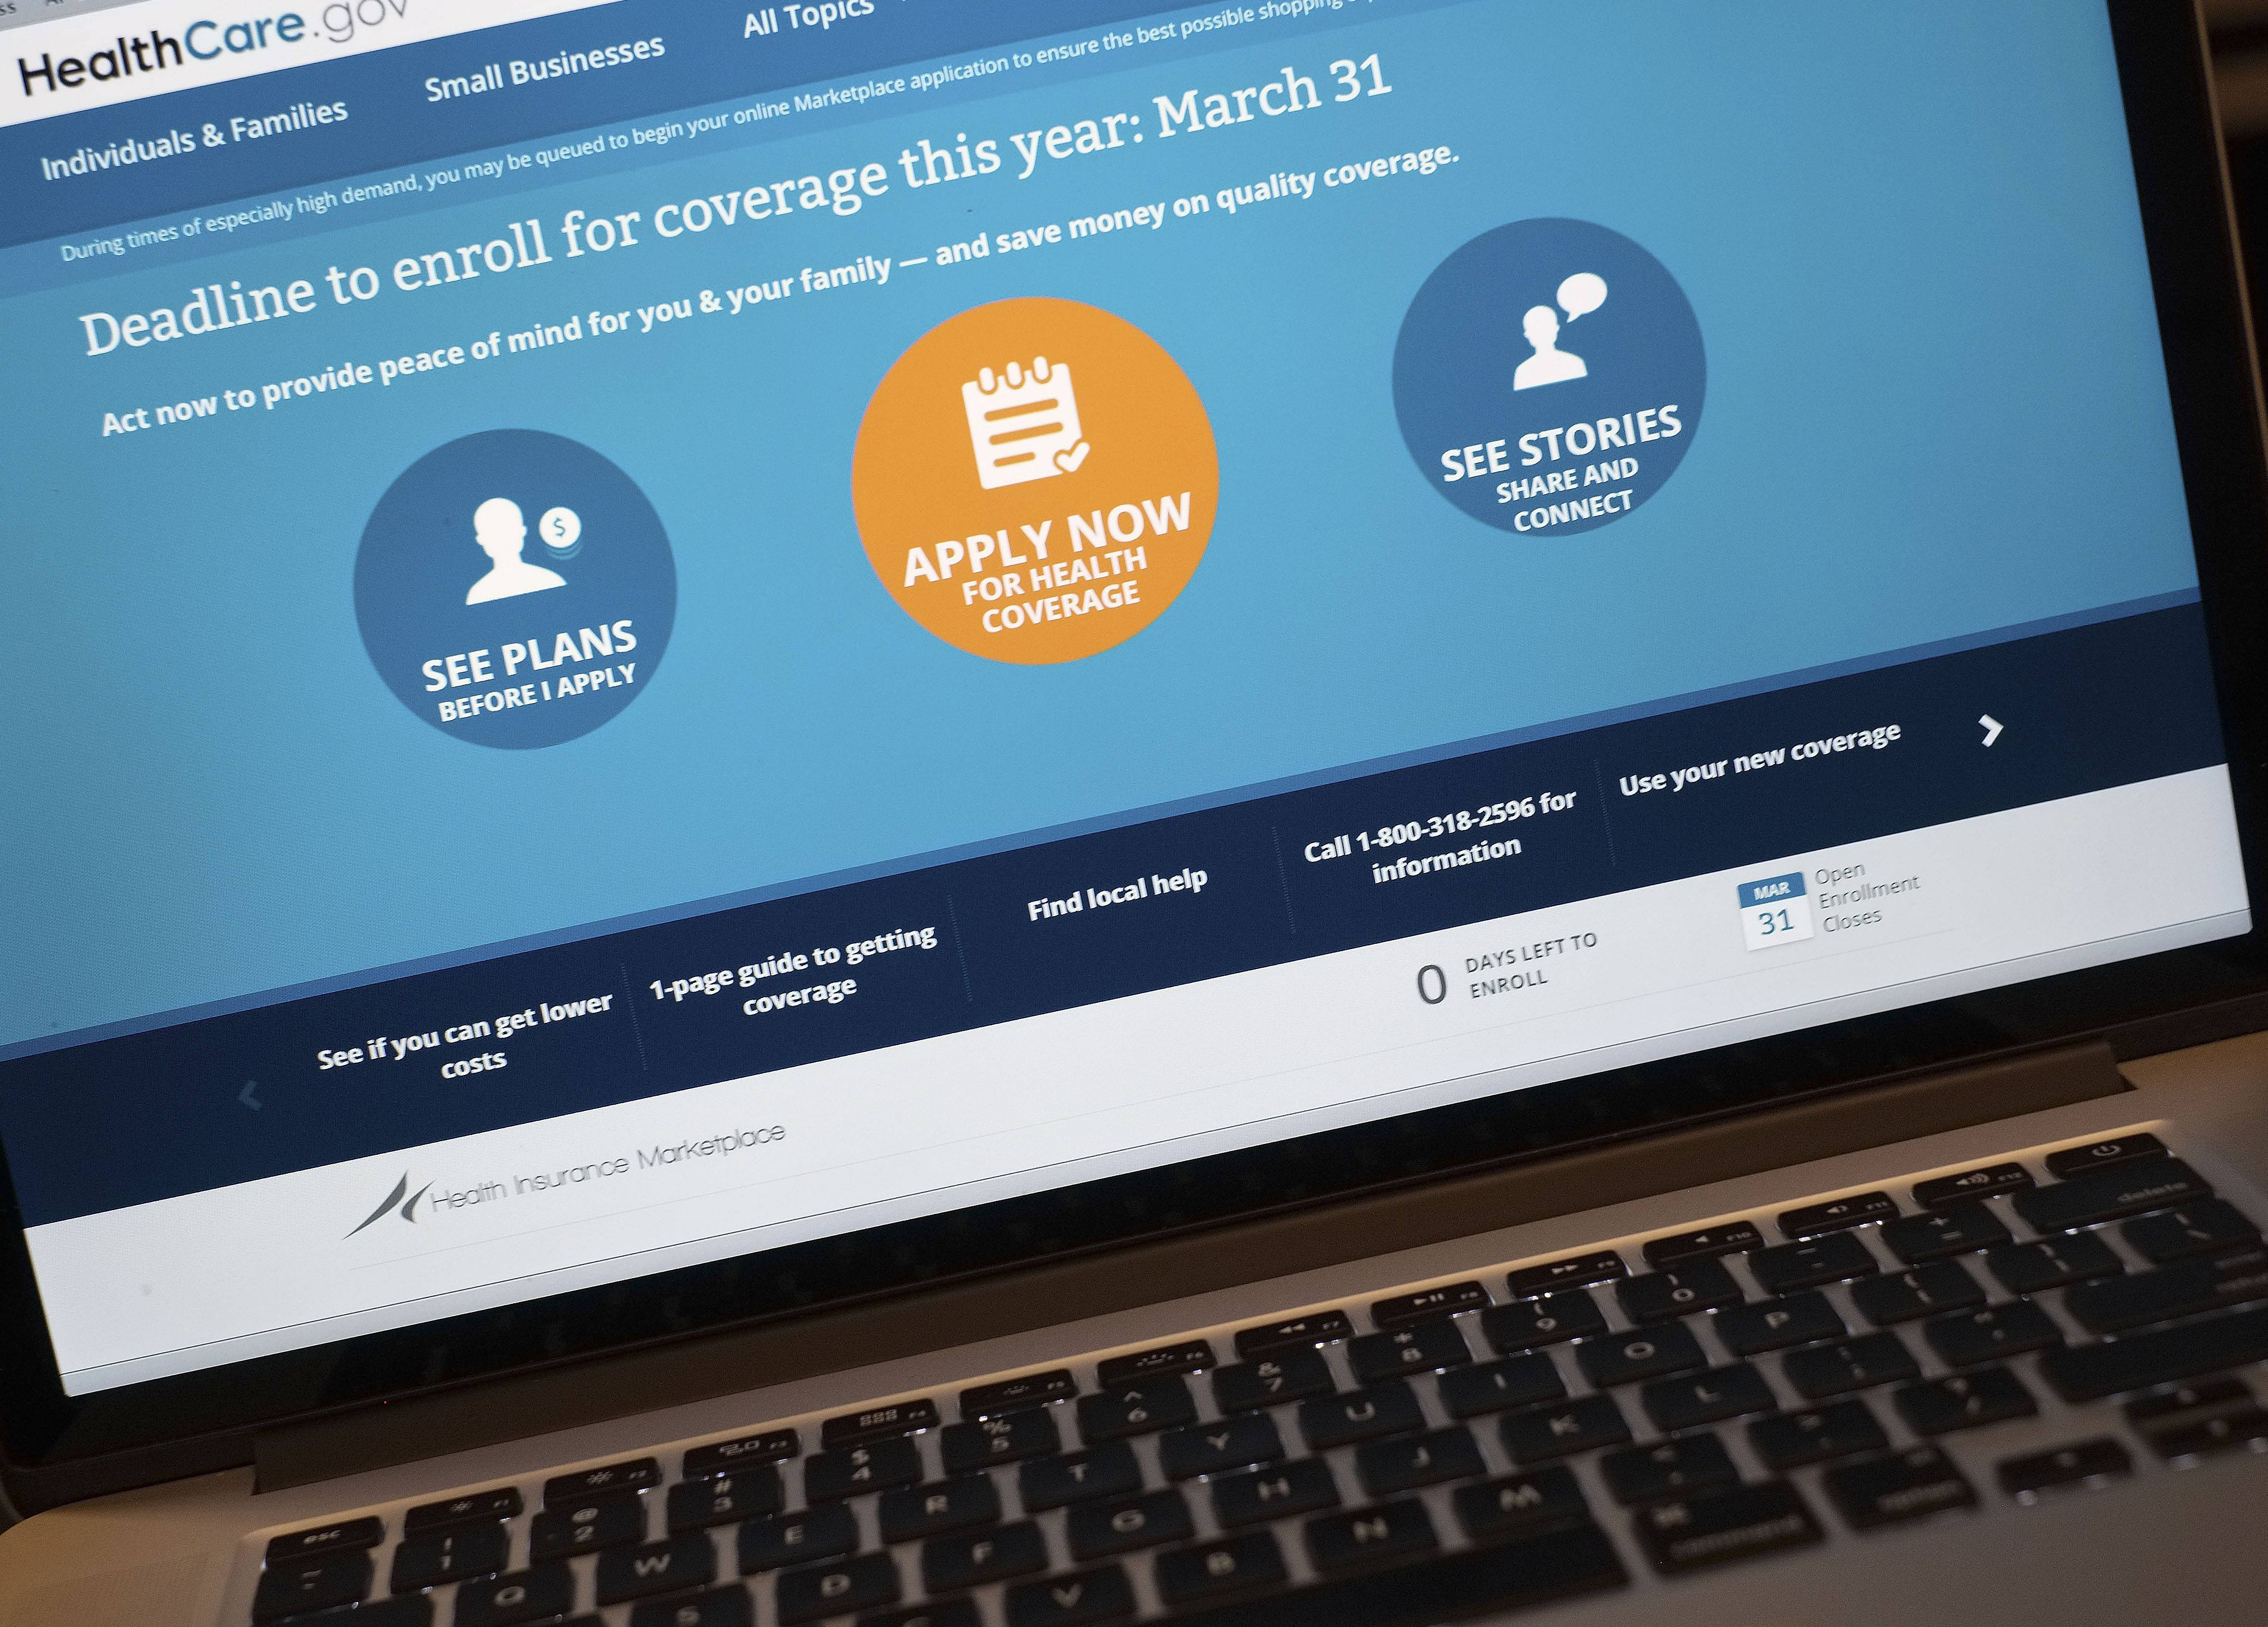 The Obama administration's health care website stumbled, falling out of service for nearly four hours on deadline day for new sign-ups.